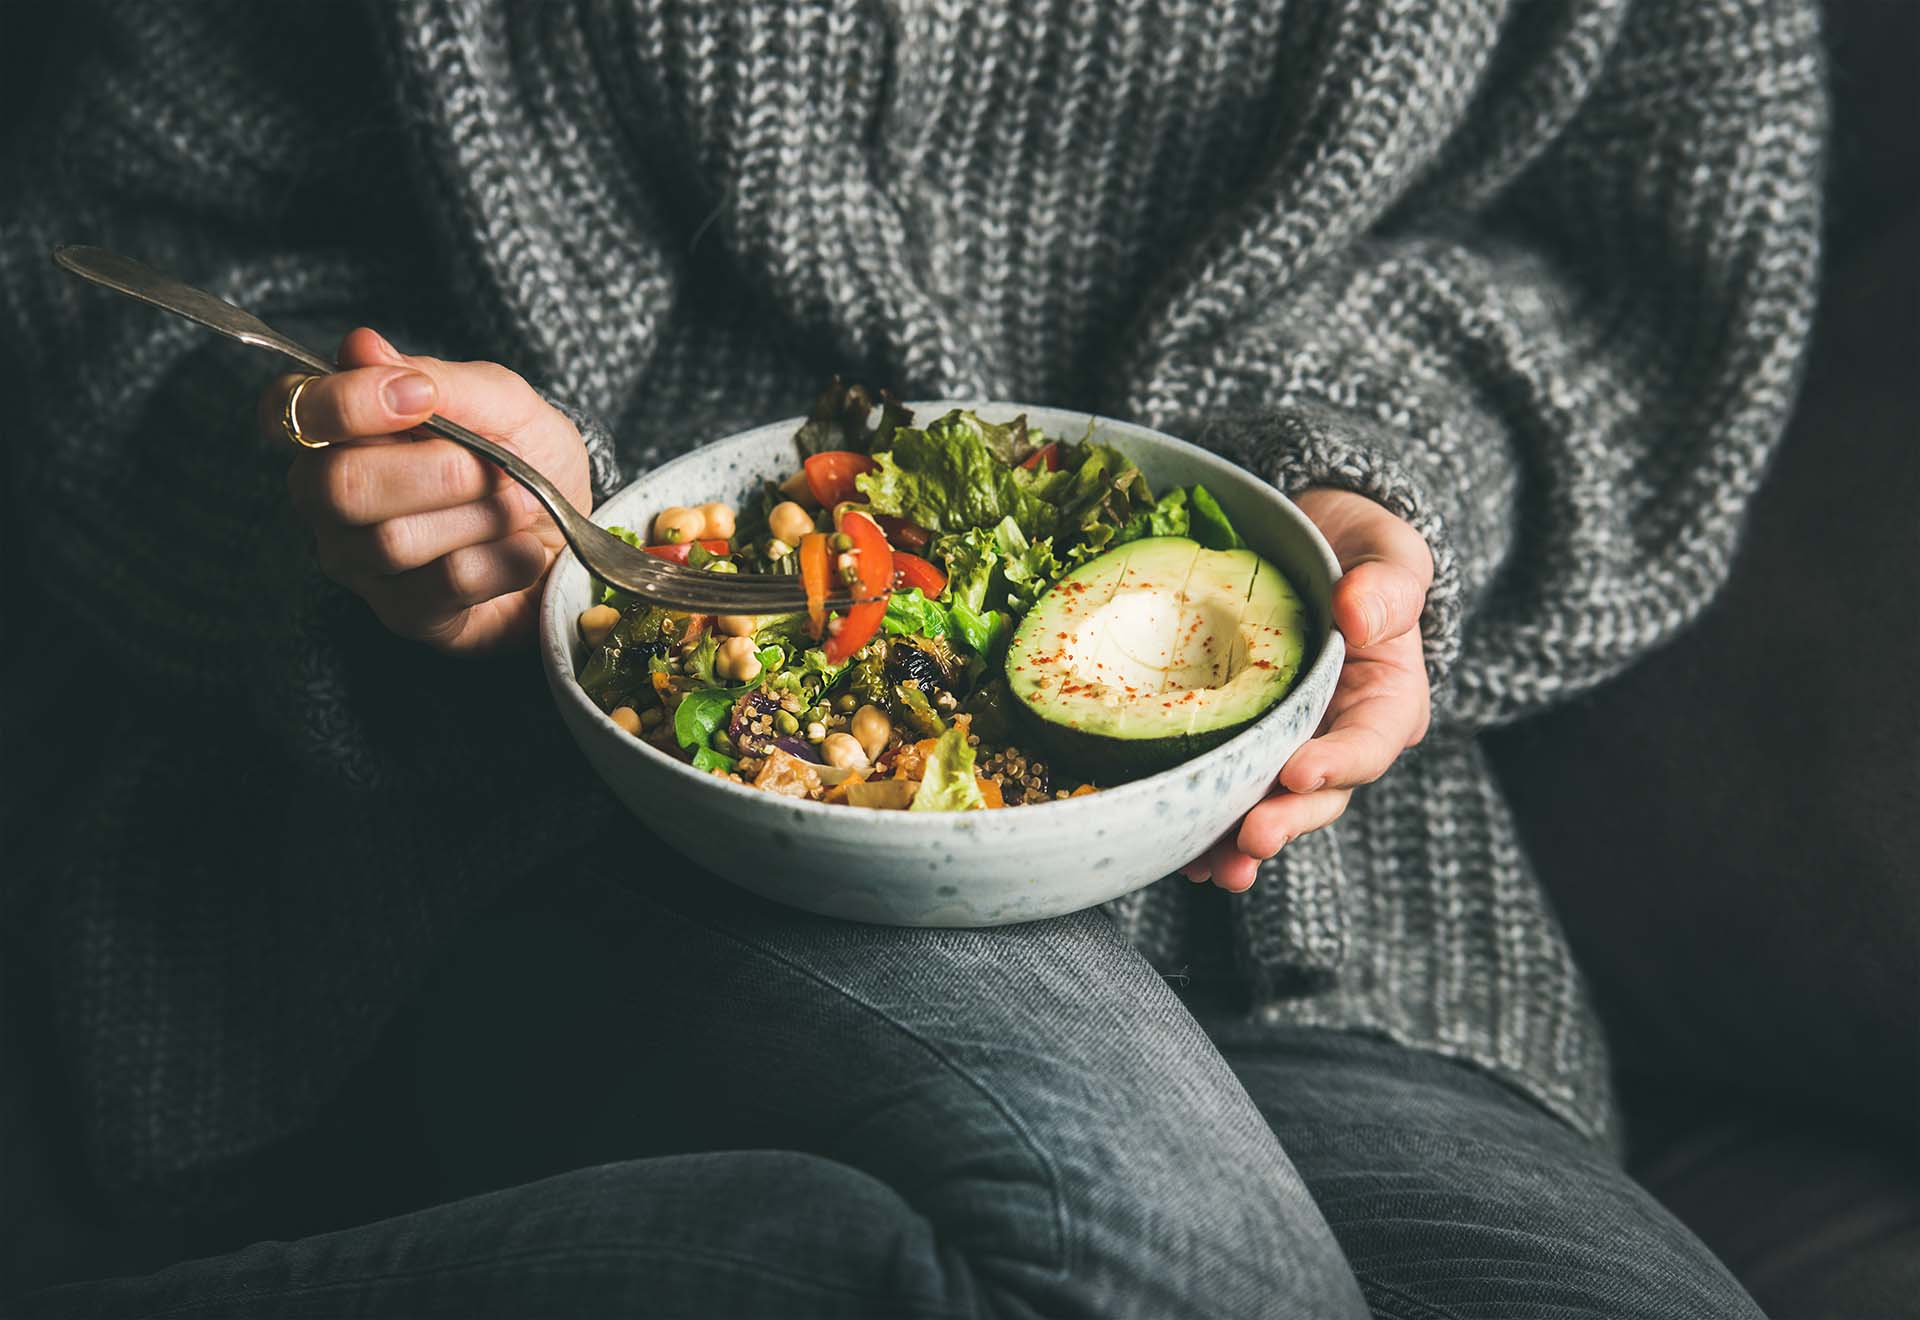 Woman in grey jeans and sweater eating fresh salad, avocado half, grains, beans, roasted vegetables from Buddha bowl.